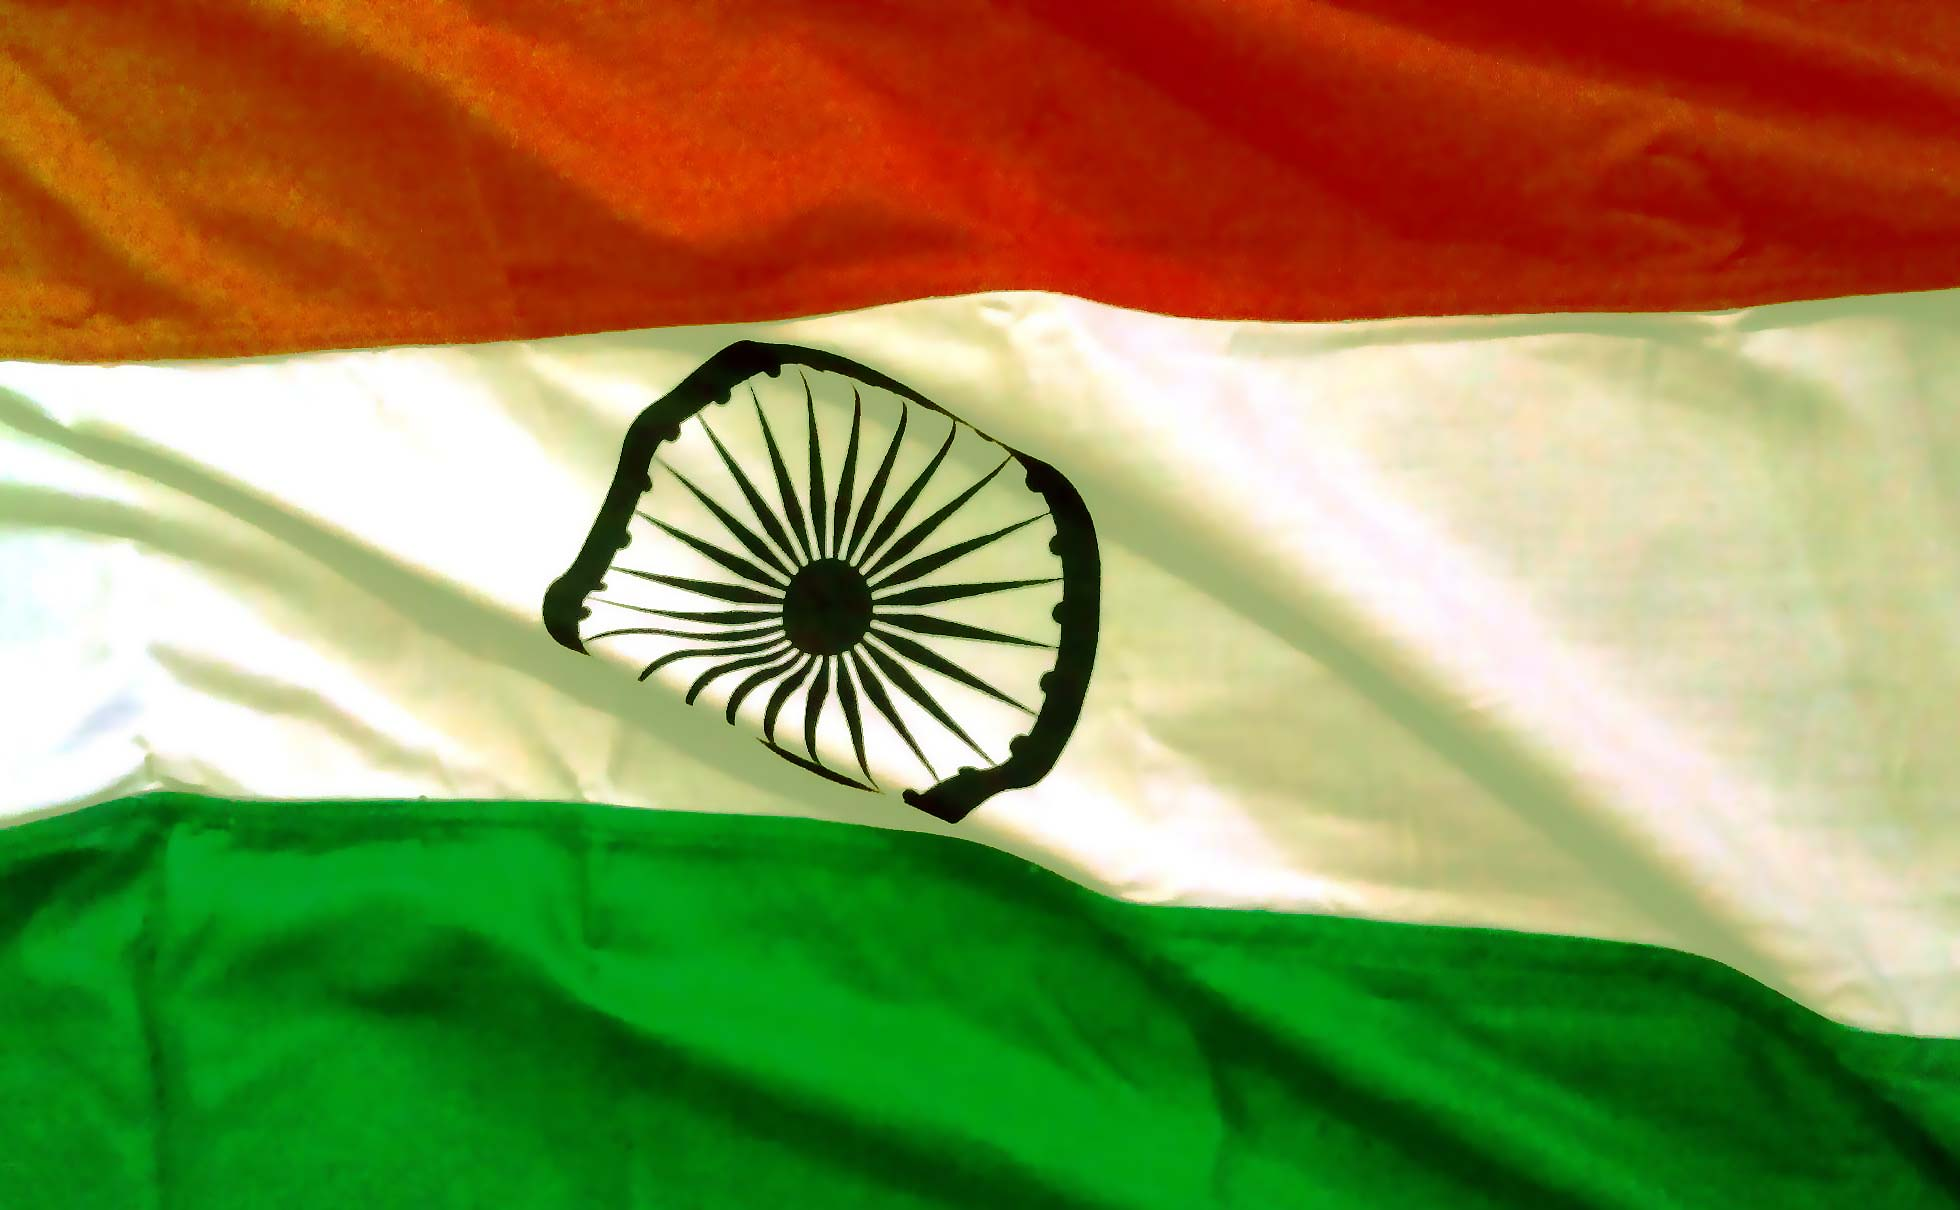 India Flag Hd Art: Indian Flag HD Images Wallpapers Free Download